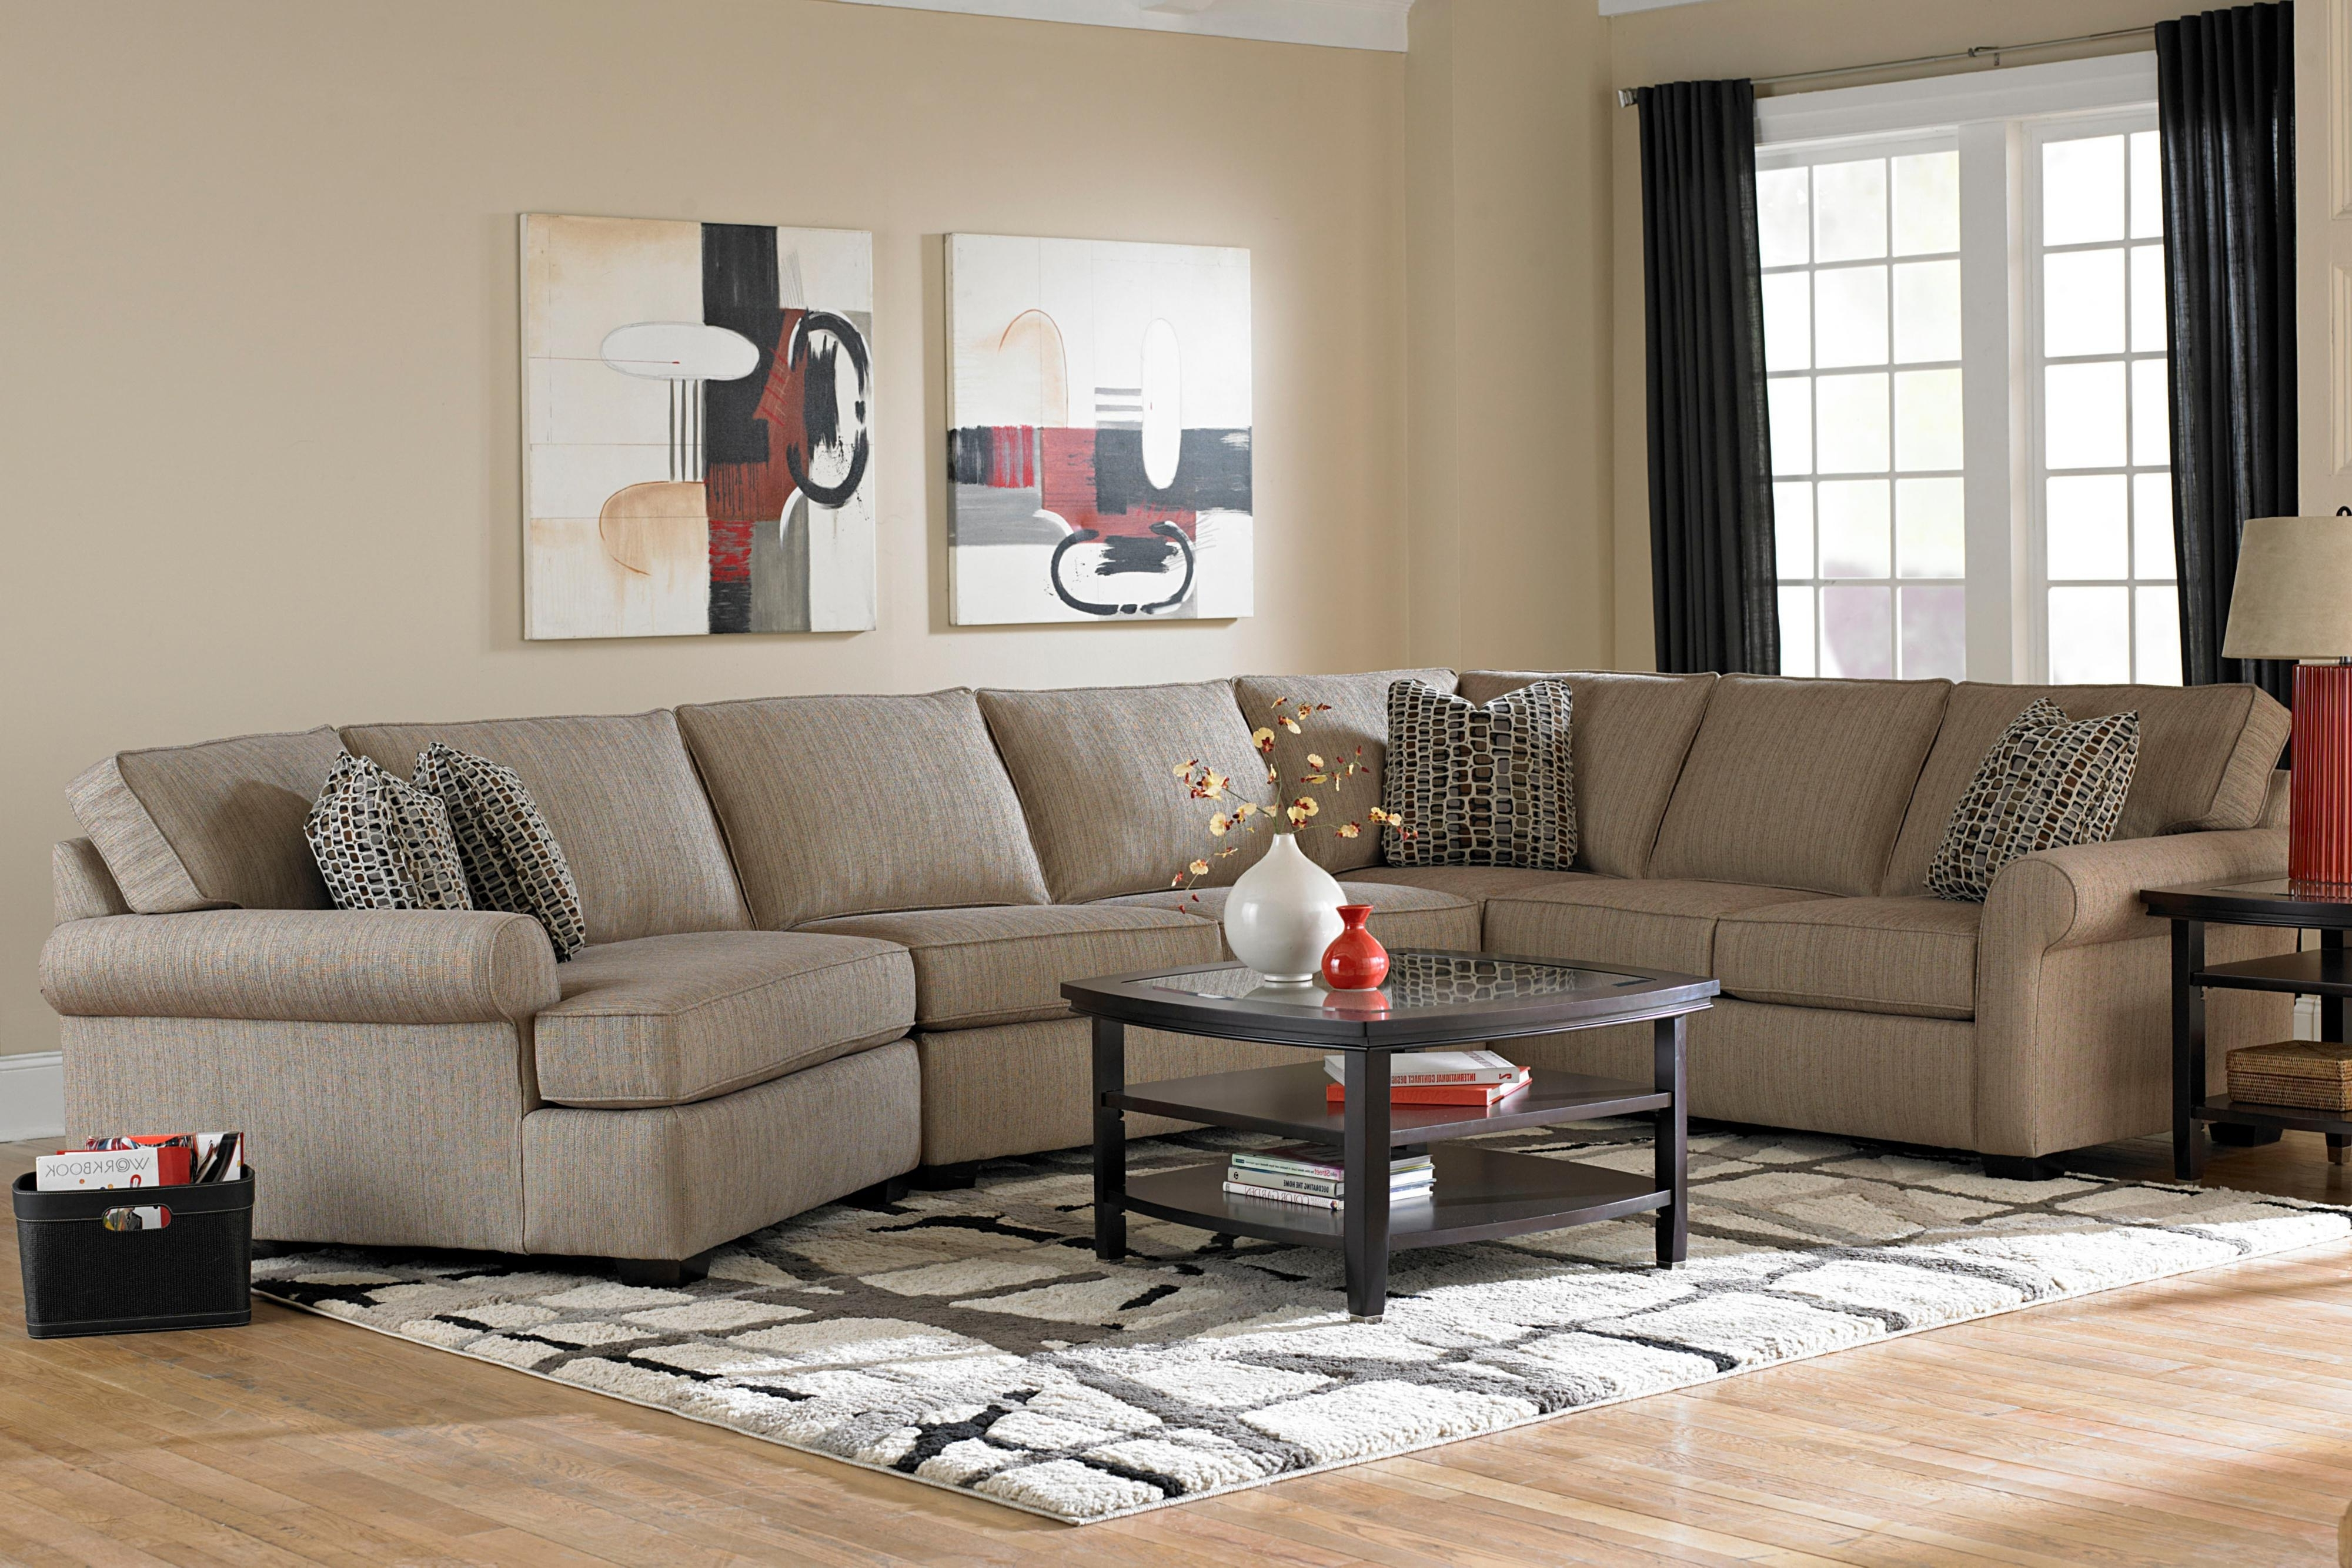 Preferred Pensacola Fl Sectional Sofas For Broyhill Furniture Ethan Transitional Sectional Sofa With Right (View 16 of 20)